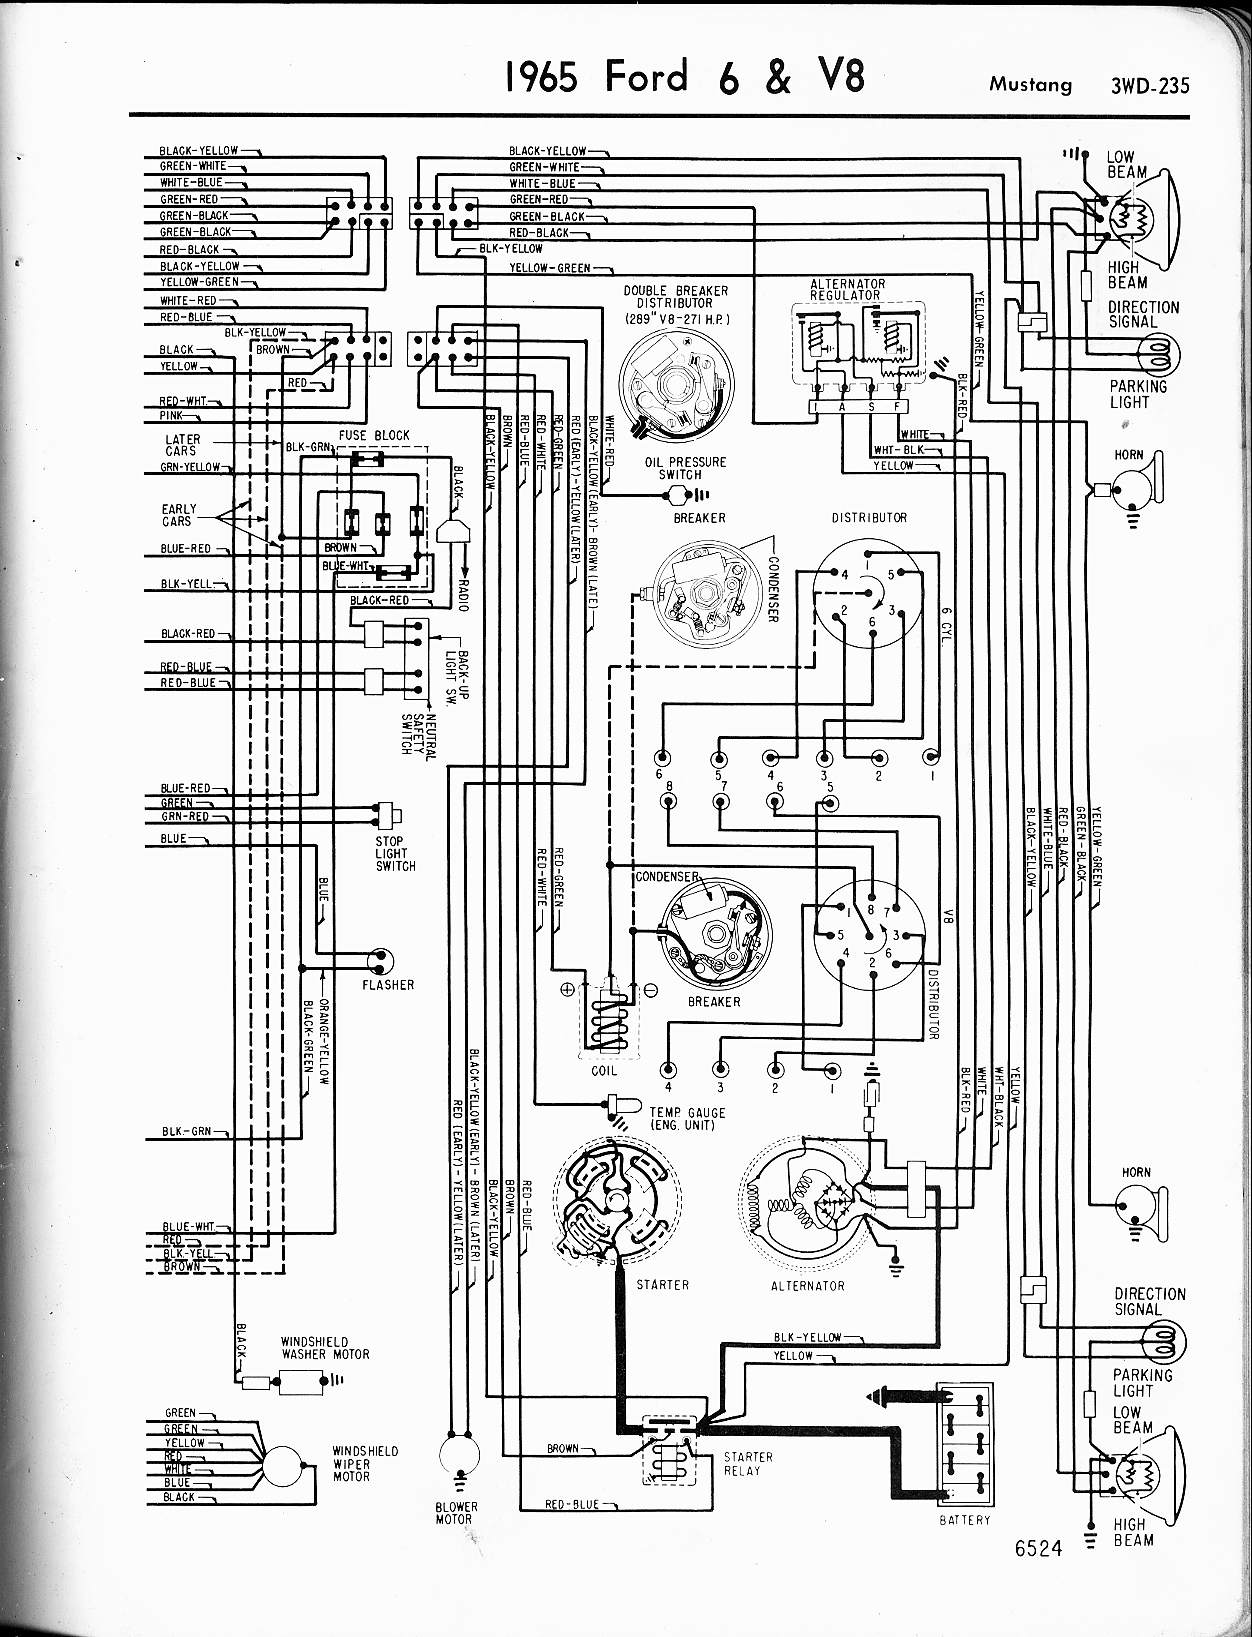 Ford F350 Wiring Diagram On 7 Plug Wiring Diagram For 2003 F150 Xl